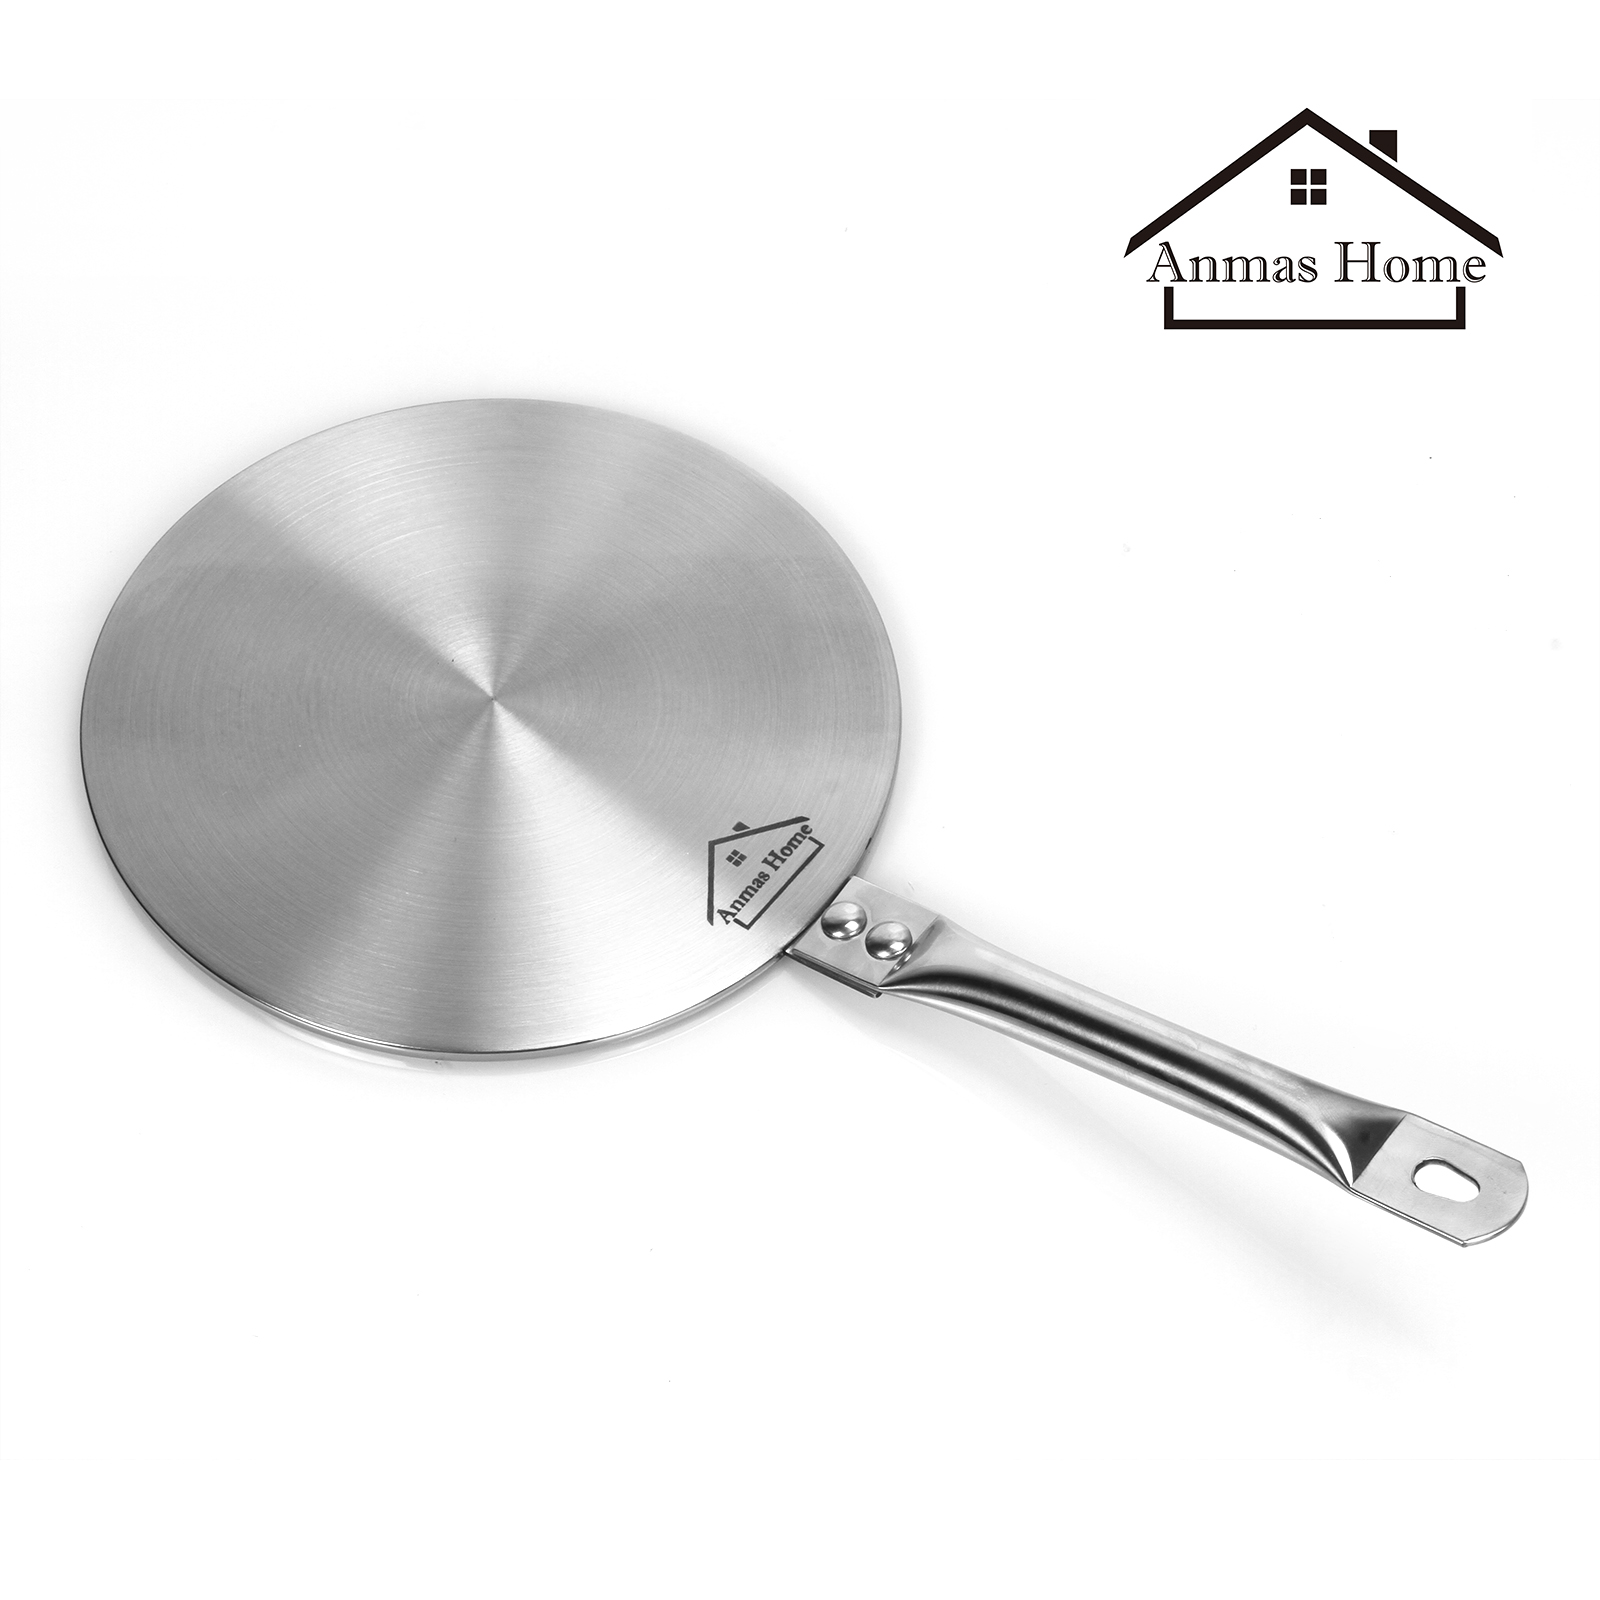 Stainless Steel Induction Cooktop  Converter Disk Plate Cookware Interface Disc Plate Heat Diffuser